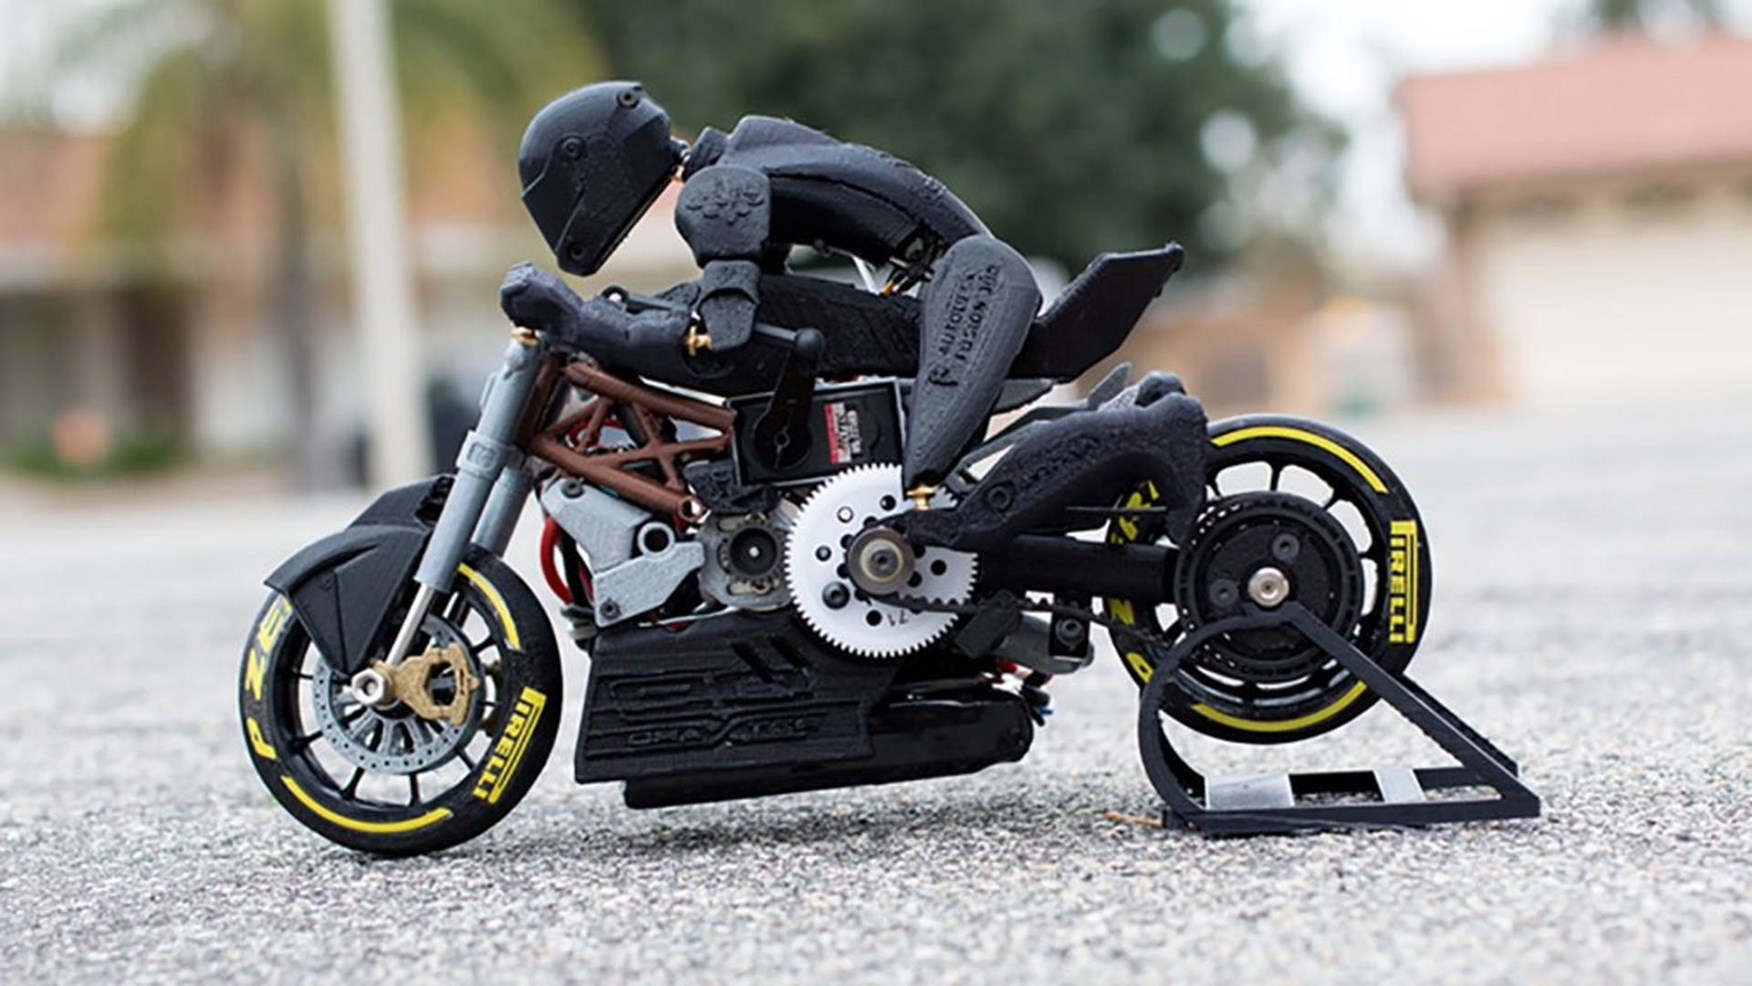 world's first 3d printed motorcycle revealed | mcn